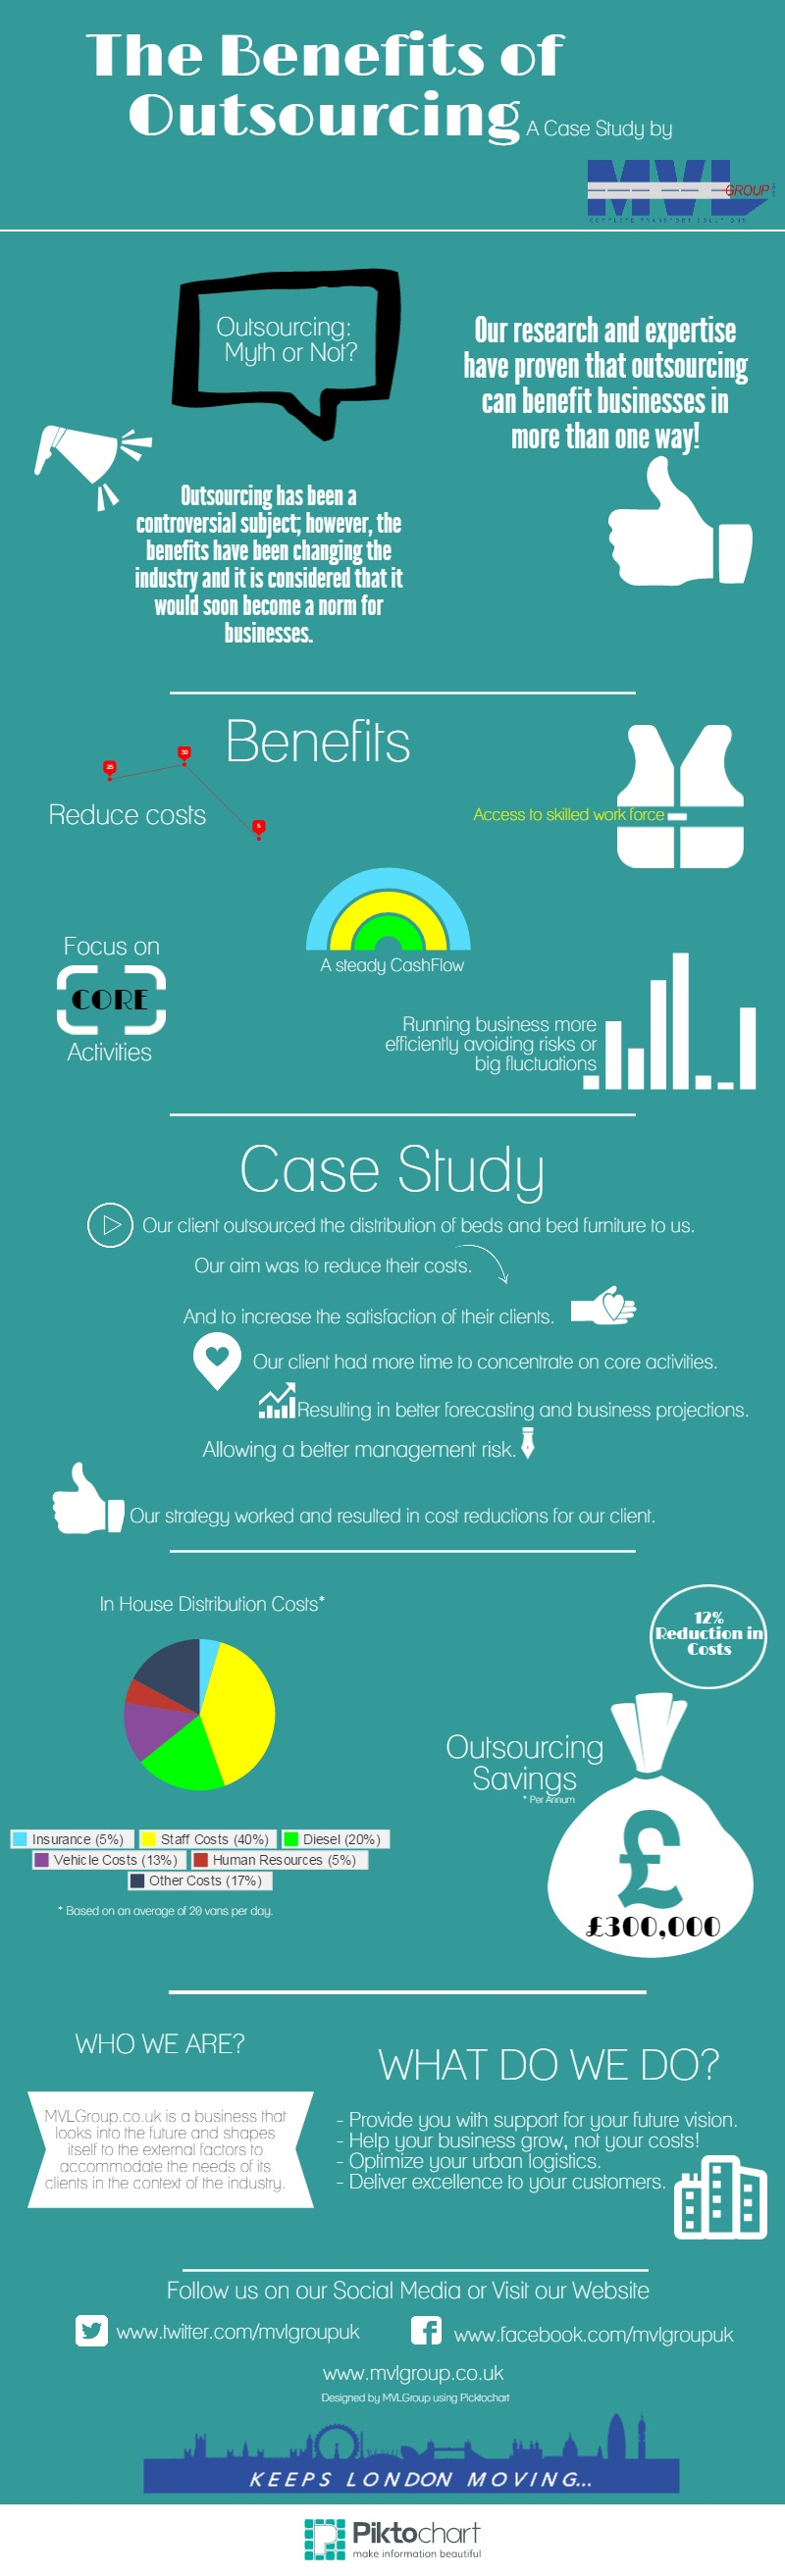 MVLGroup Case Study Outsourcing